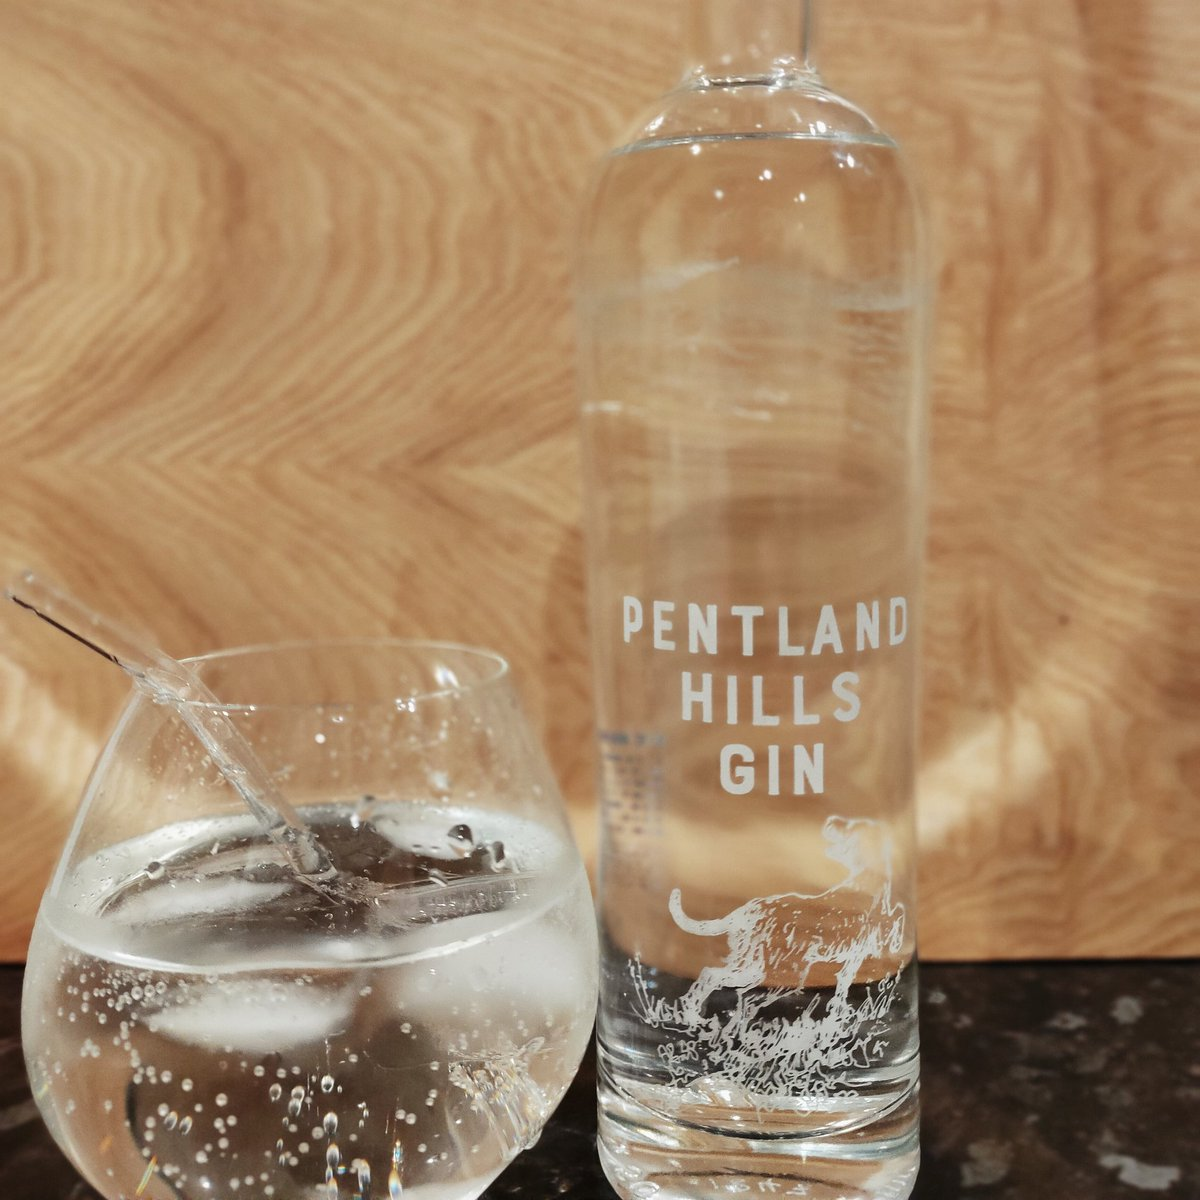 Deliciously refreshing end to a Monday with my first taste of @PentlandGin. And when it's done, I return my personalised #gin bottle for a refill, and get £10 off. #scottishgin